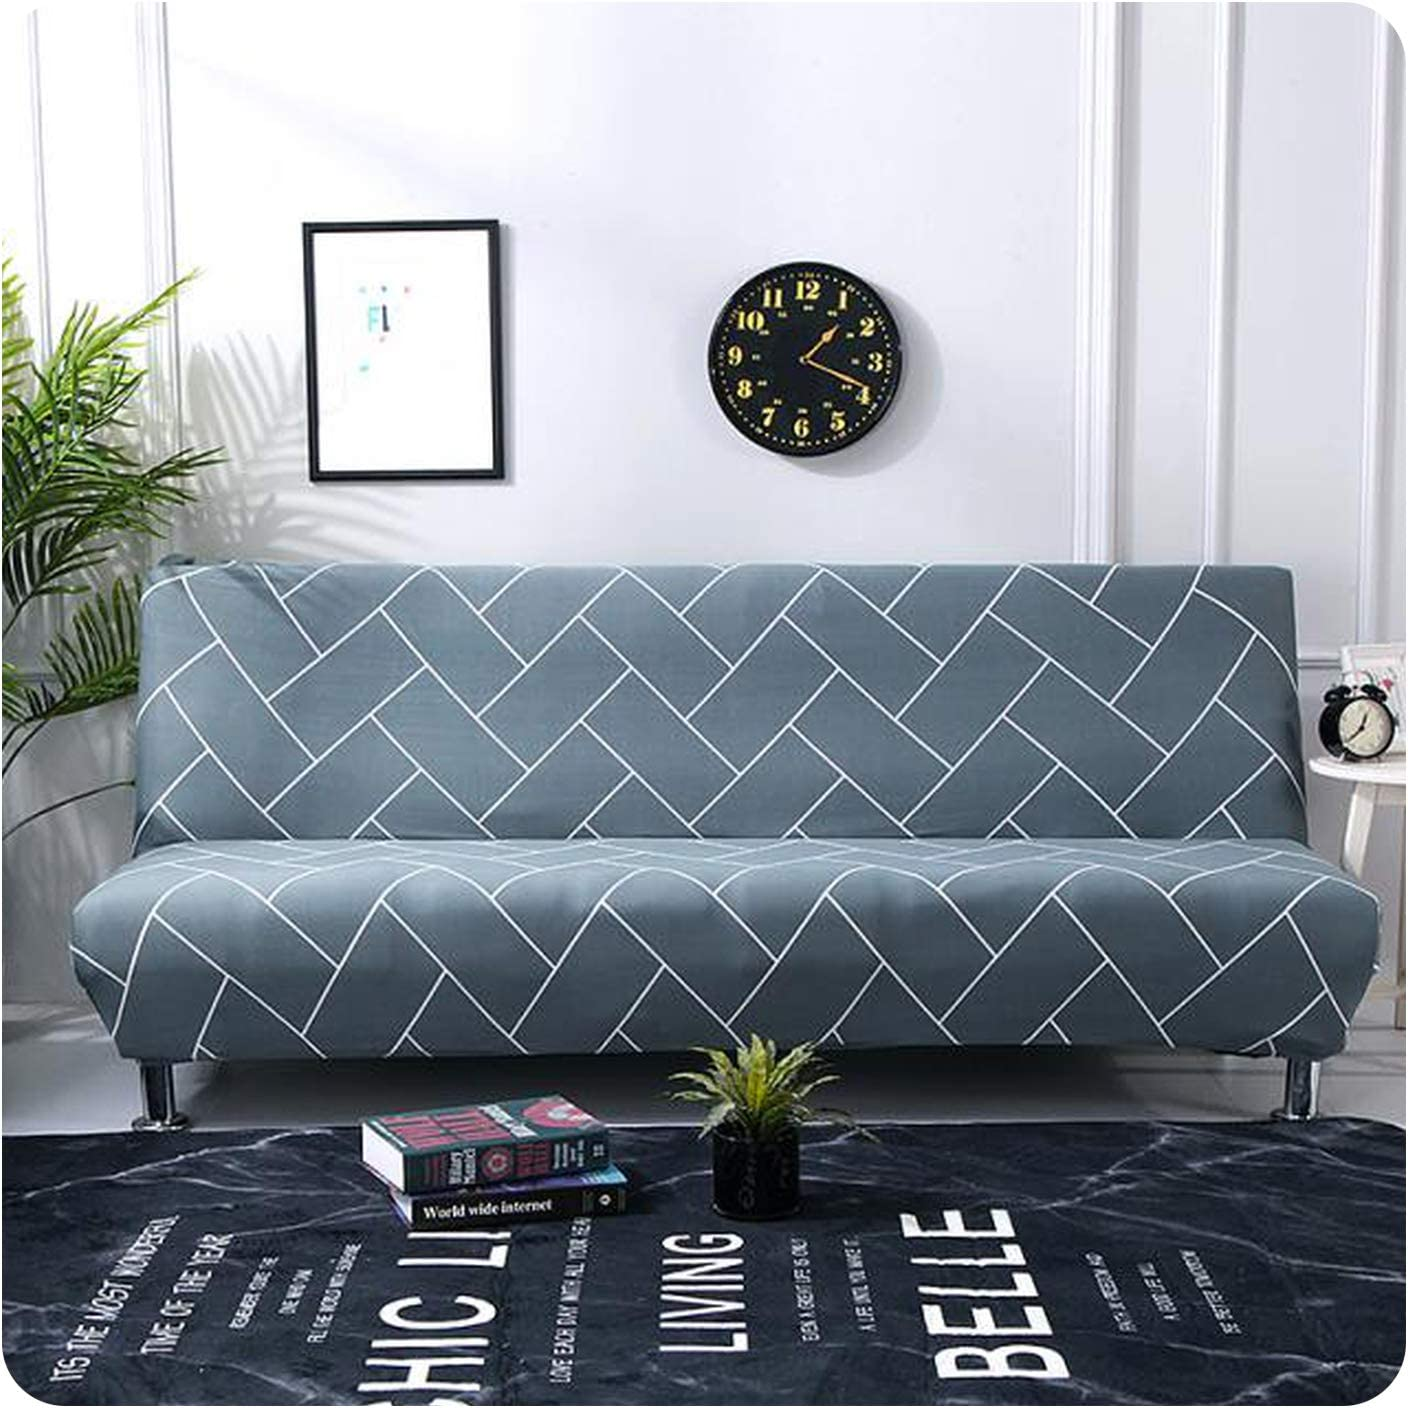 KASHINO Modern Sofa Bed Minneapolis Mall Mail order cheap Cover Spandex Couch Armless Stretch